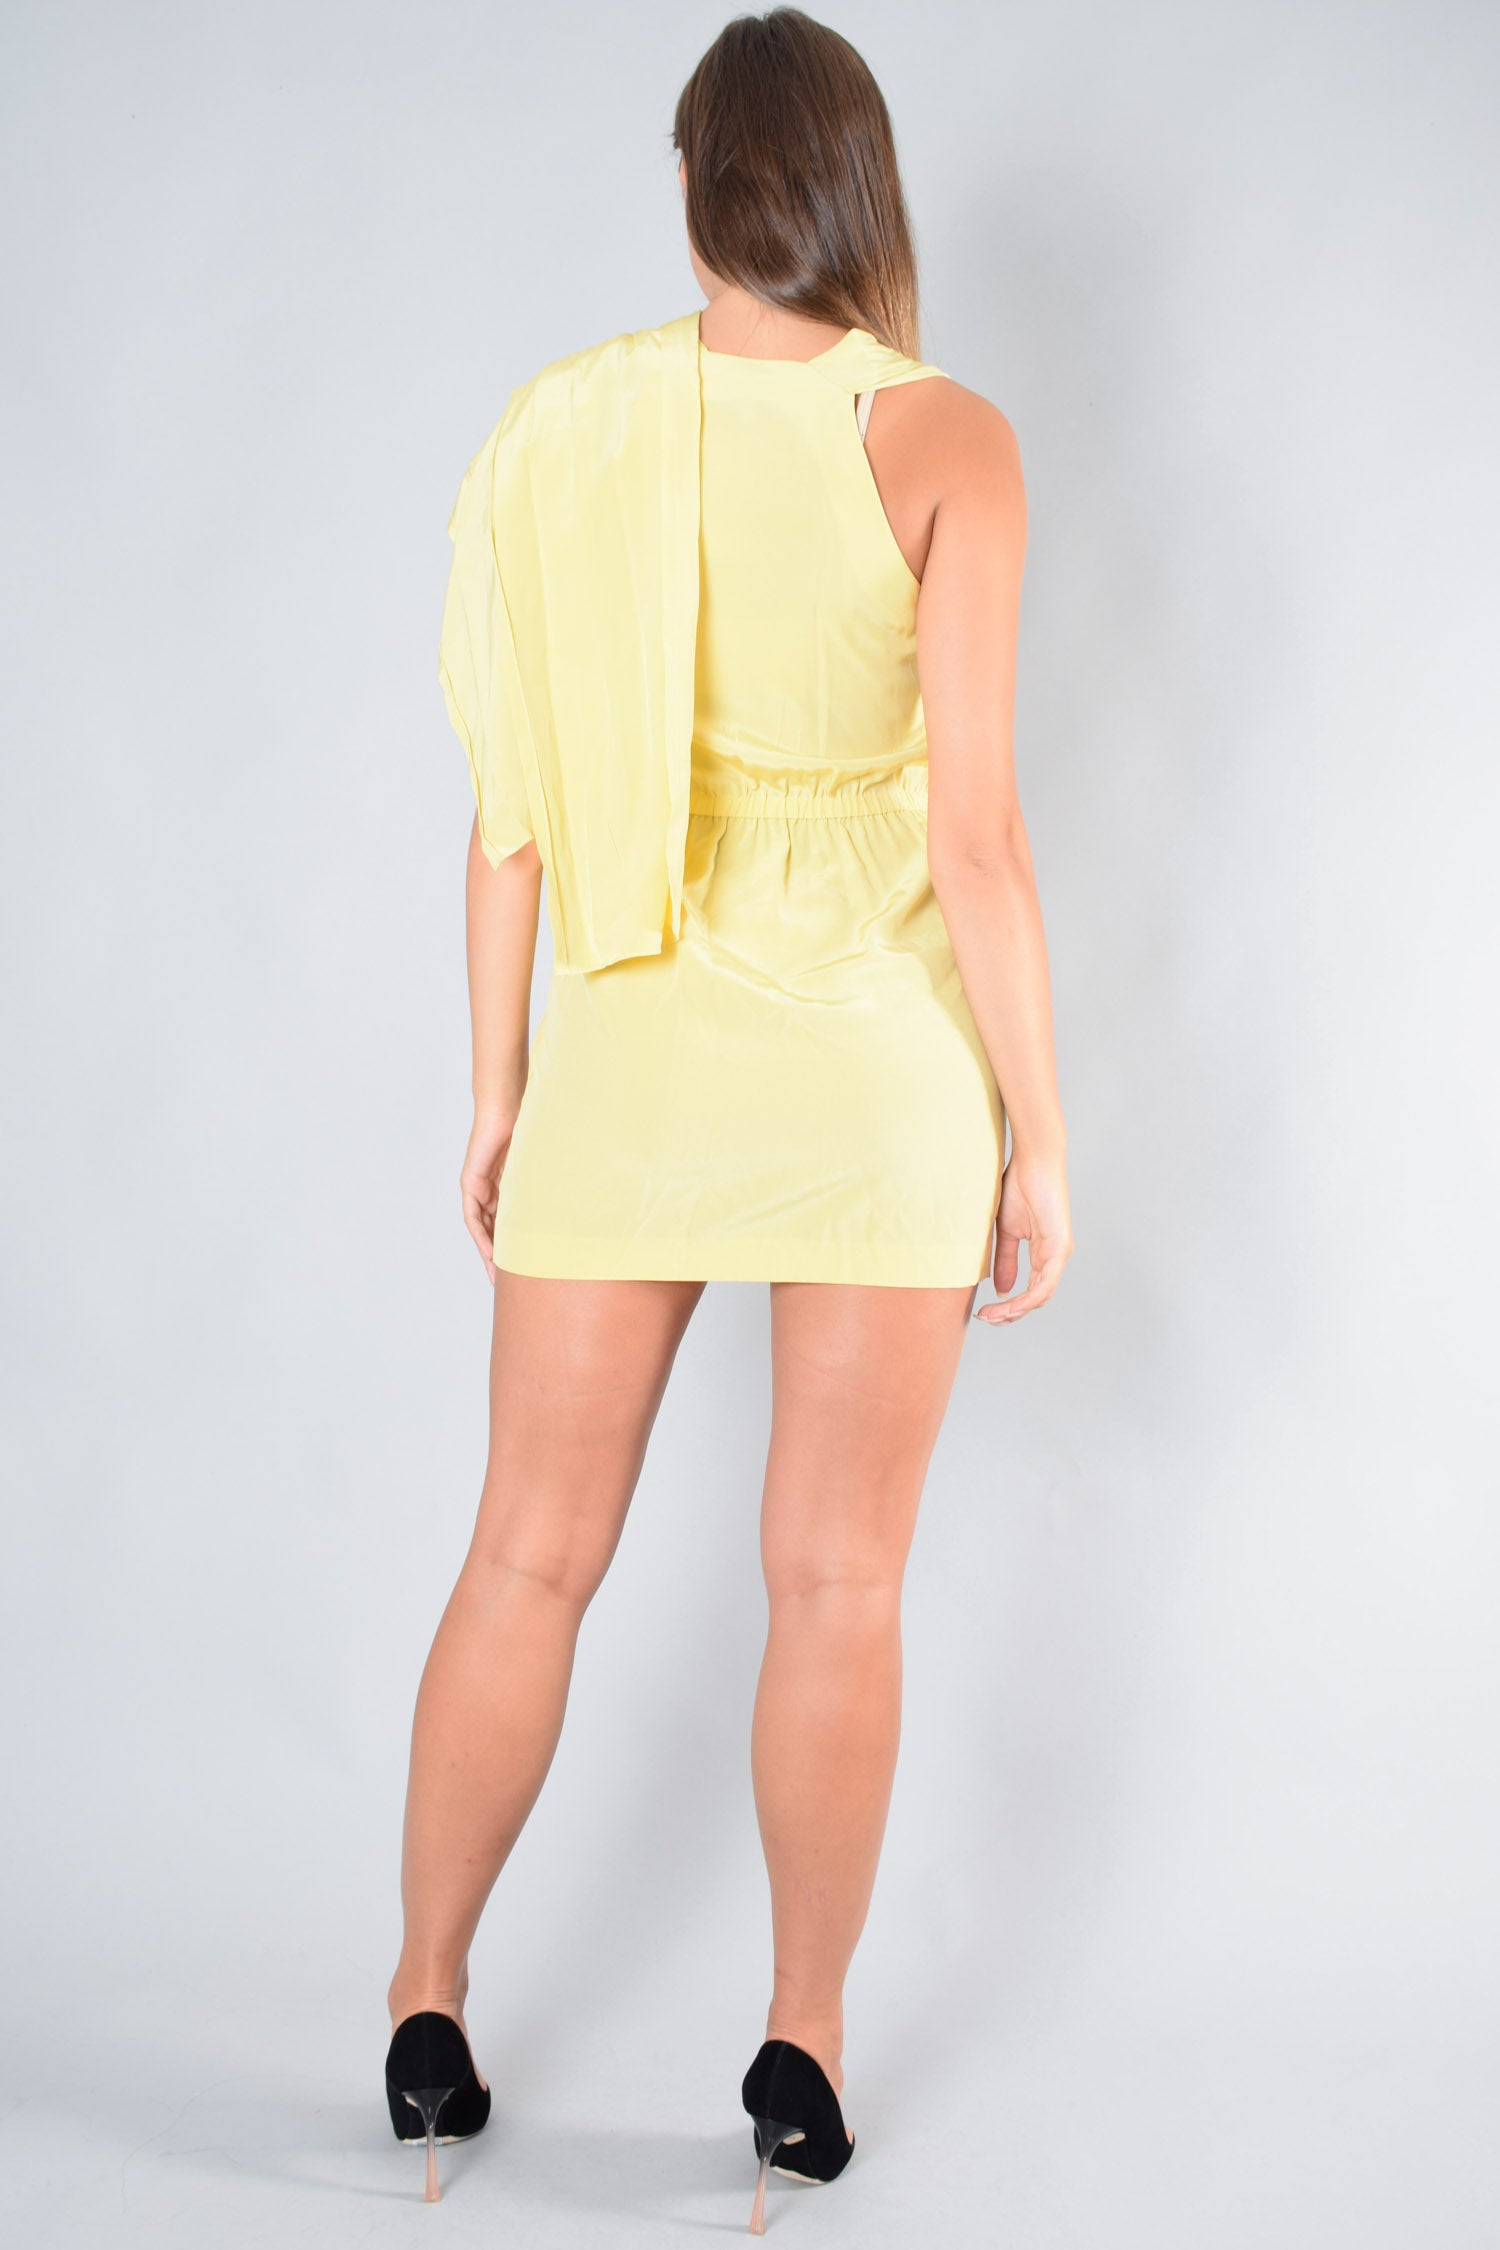 3.1 Phillip Lim Yellow Sleeveless Dress Size 4